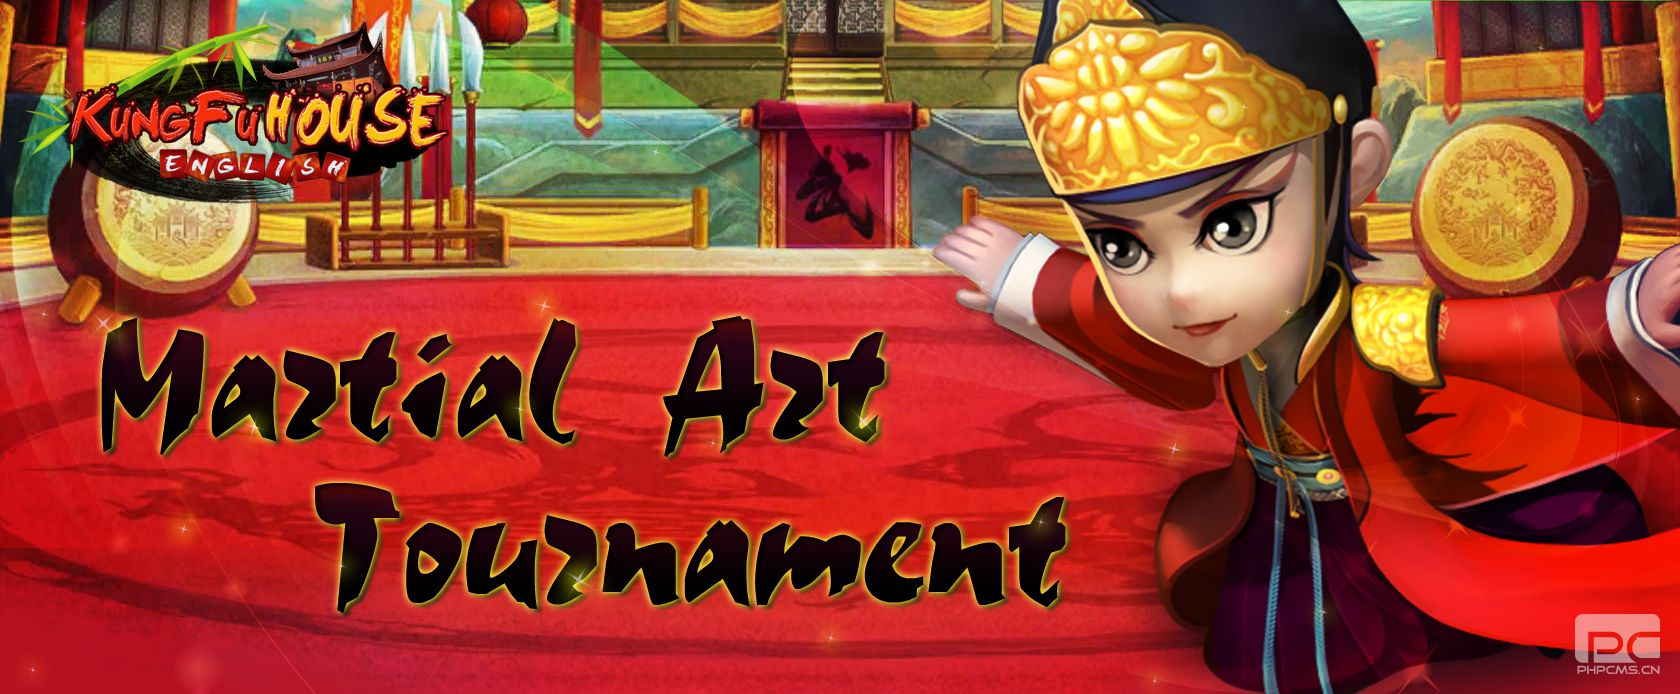 Martial Art Tournament Rules and Regulations